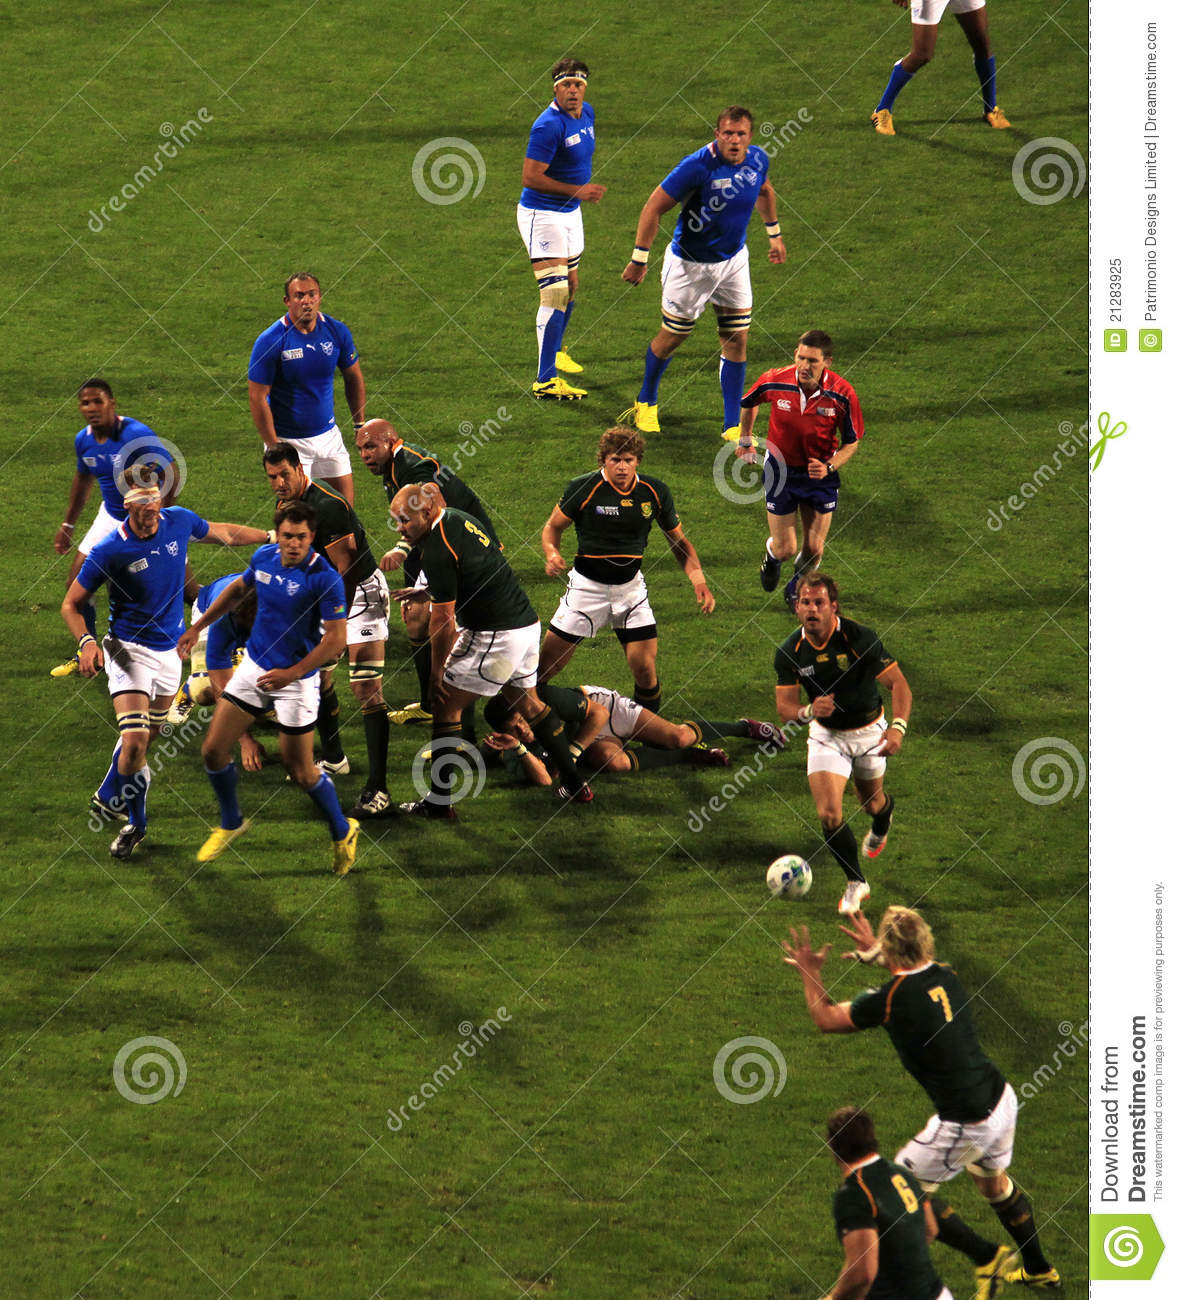 South West Rugby Cups: Rugby World Cup 2011 South Africa Versus Namibia Editorial